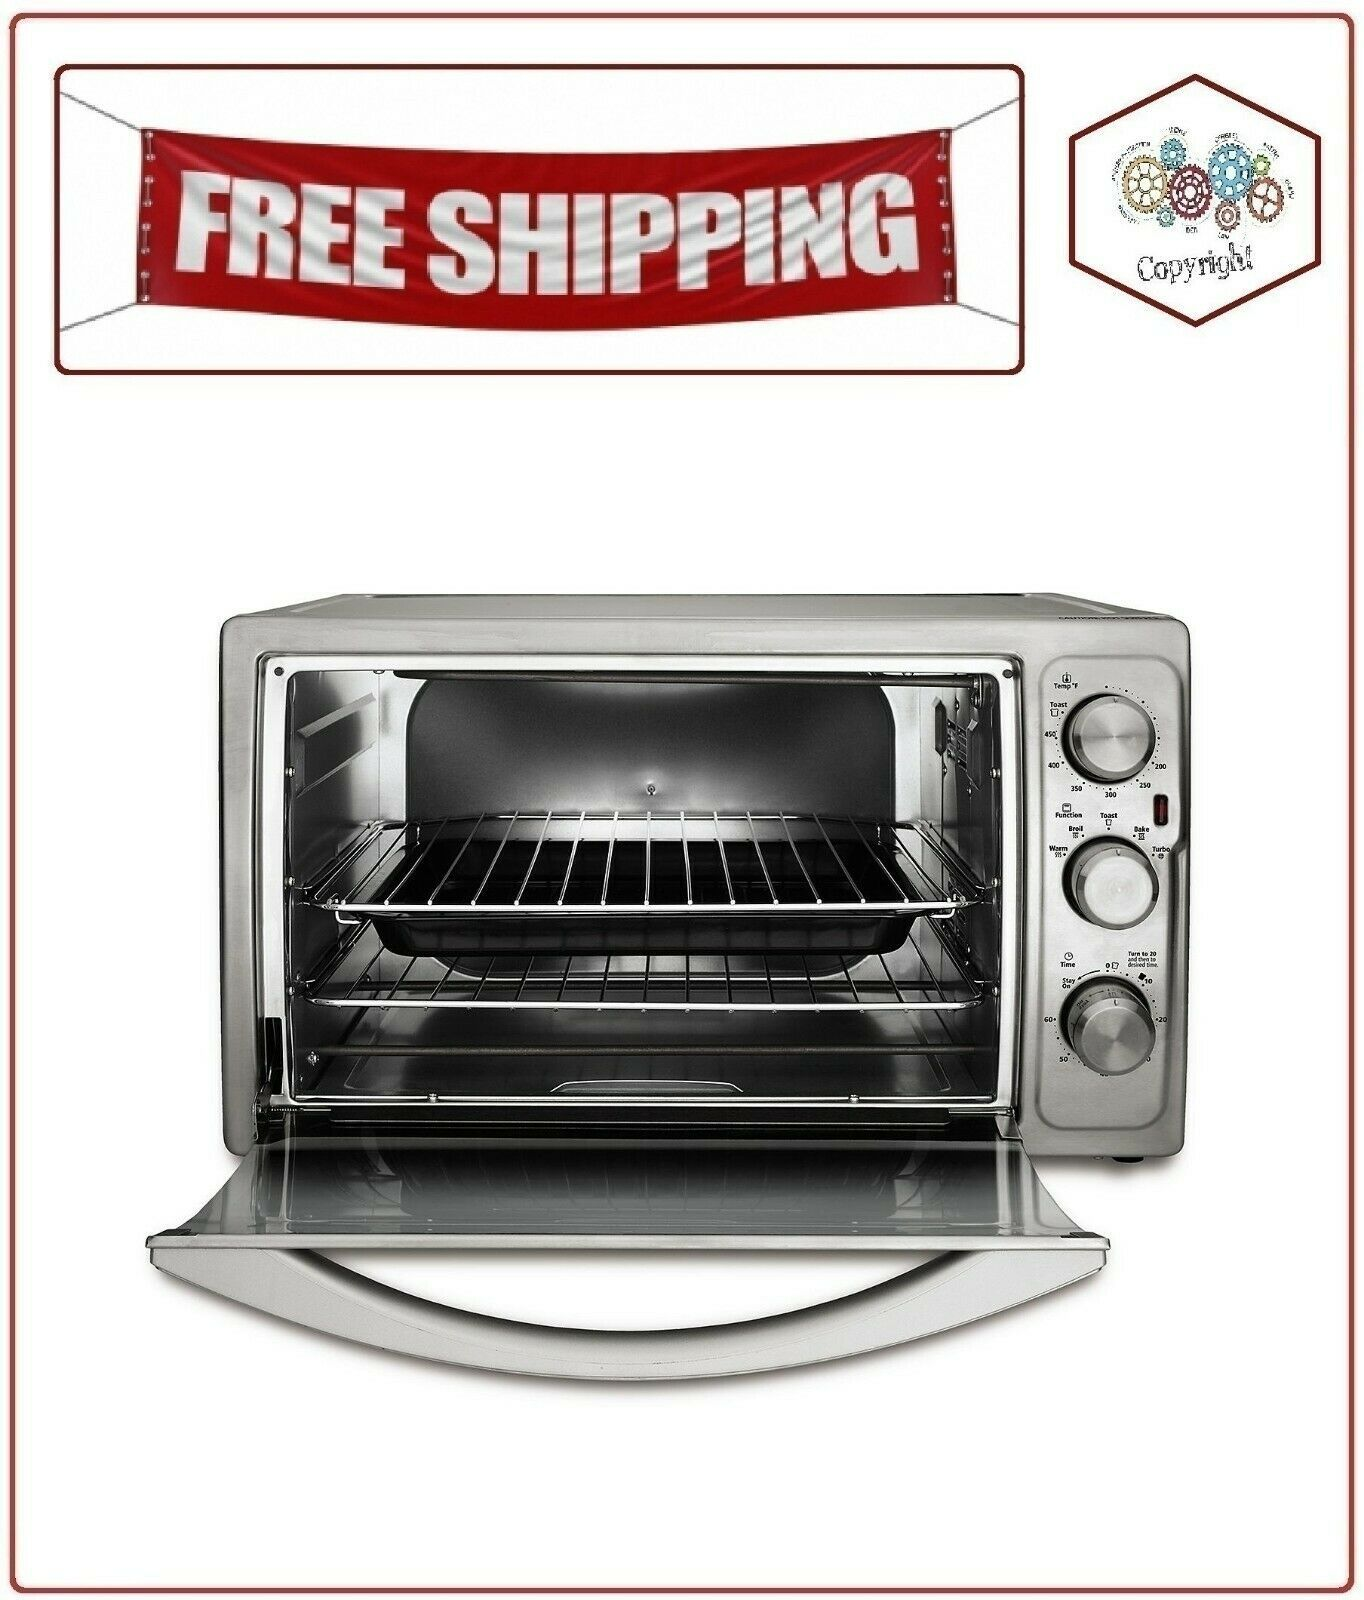 Oster Countertop Oven Extra Large Xl Stainless Steel Convection Toaster Oven Ovens Ideas Of Ovens Ov